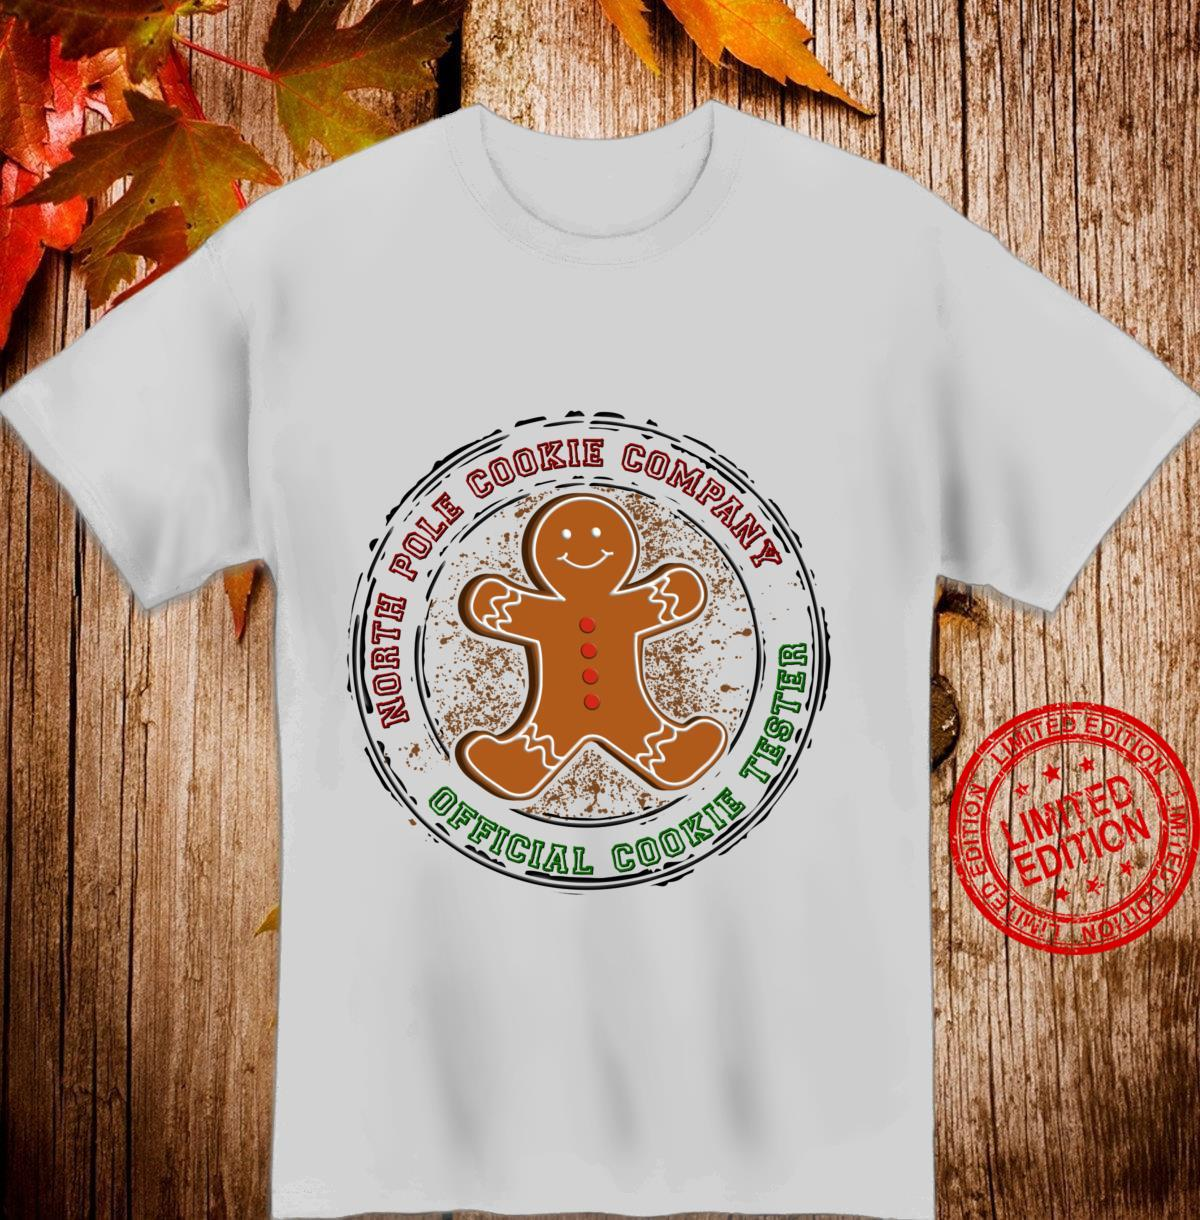 North Pole Cookie Company Official Cookie Taster Shirt